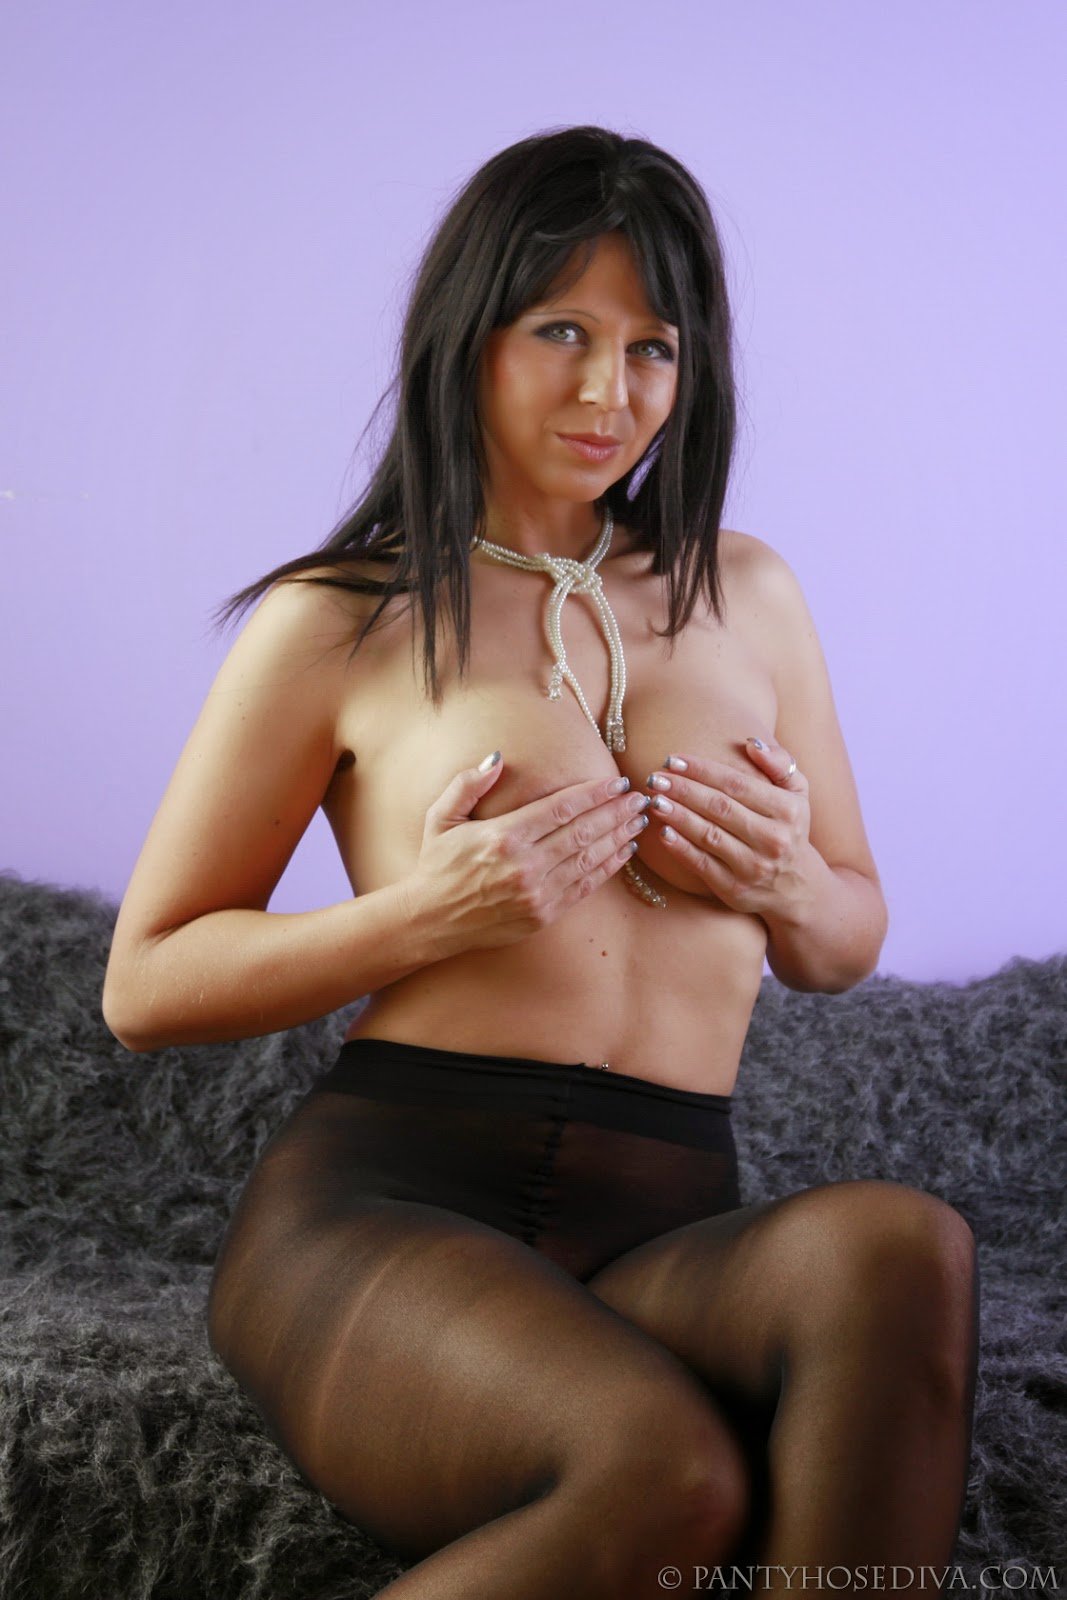 Haired Pantyhose 11